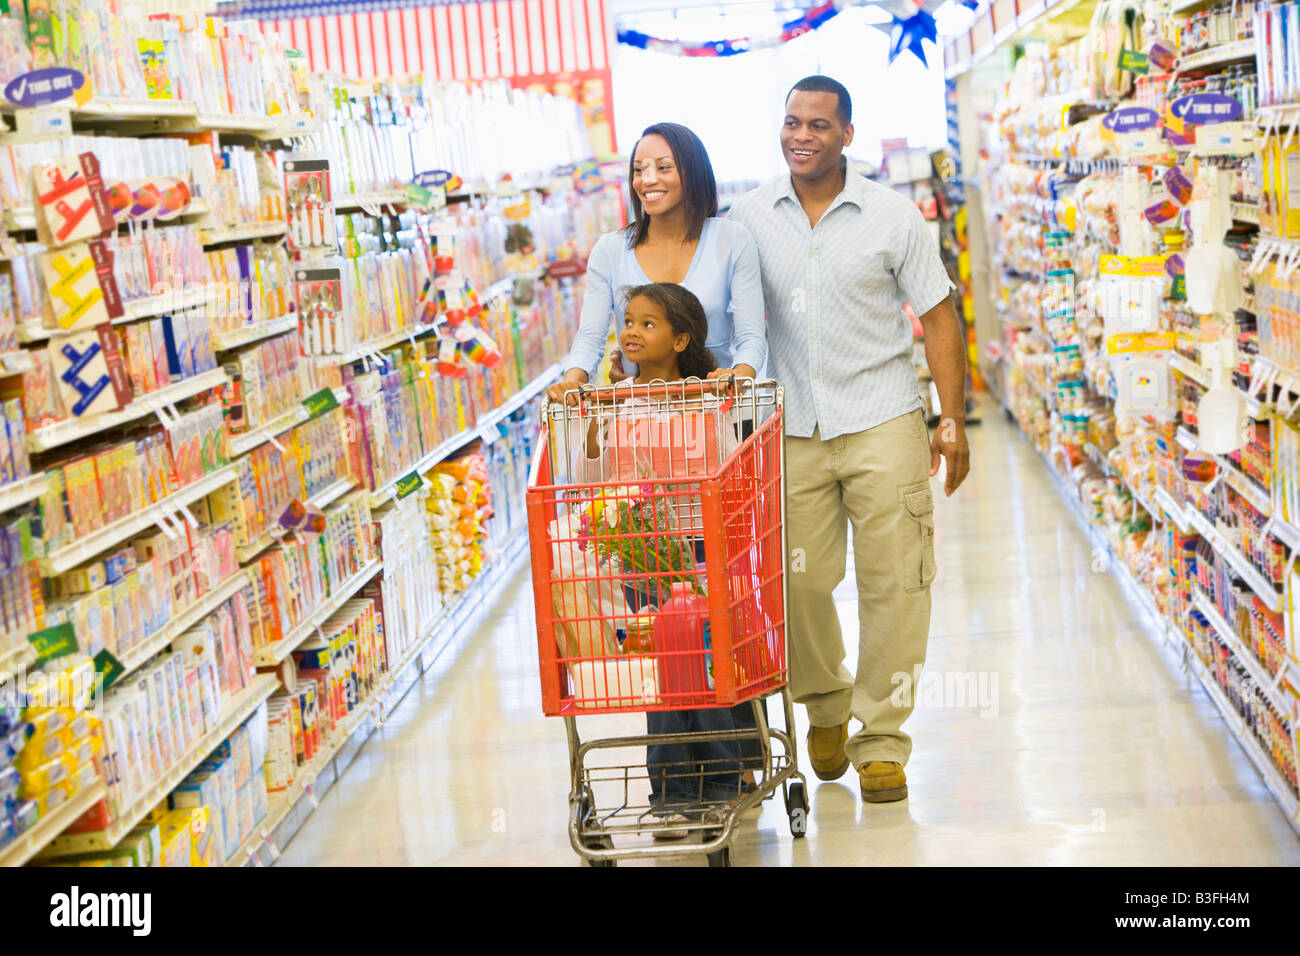 Mother and father with young daughter shopping at the grocery store. - Stock Image